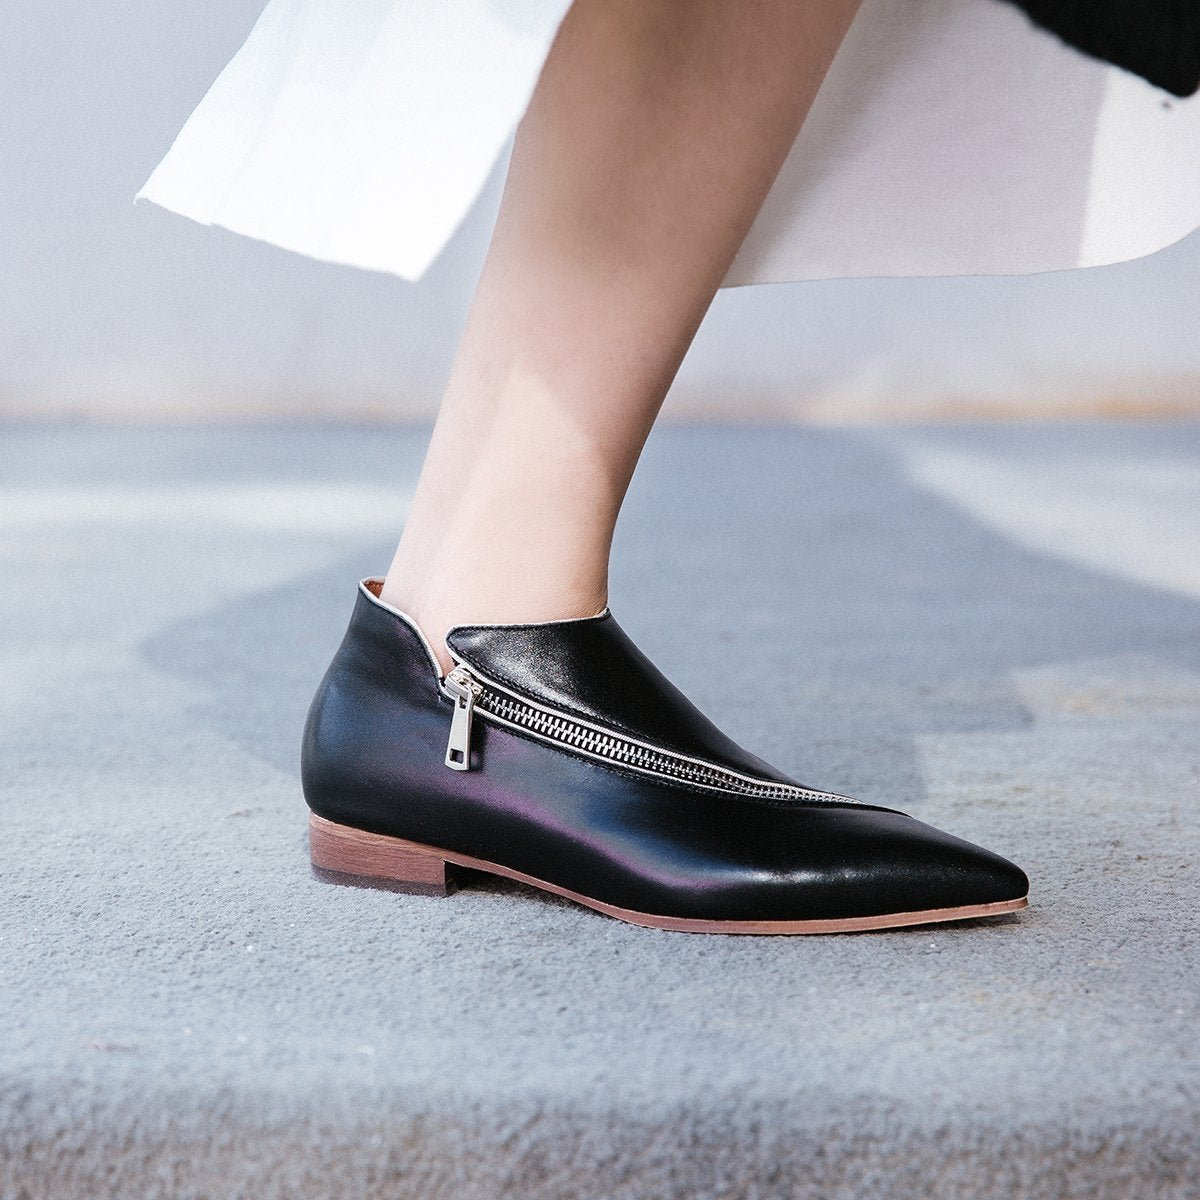 Real Leather Pumps Women Pointed Toe Zipper Autumn Shoes